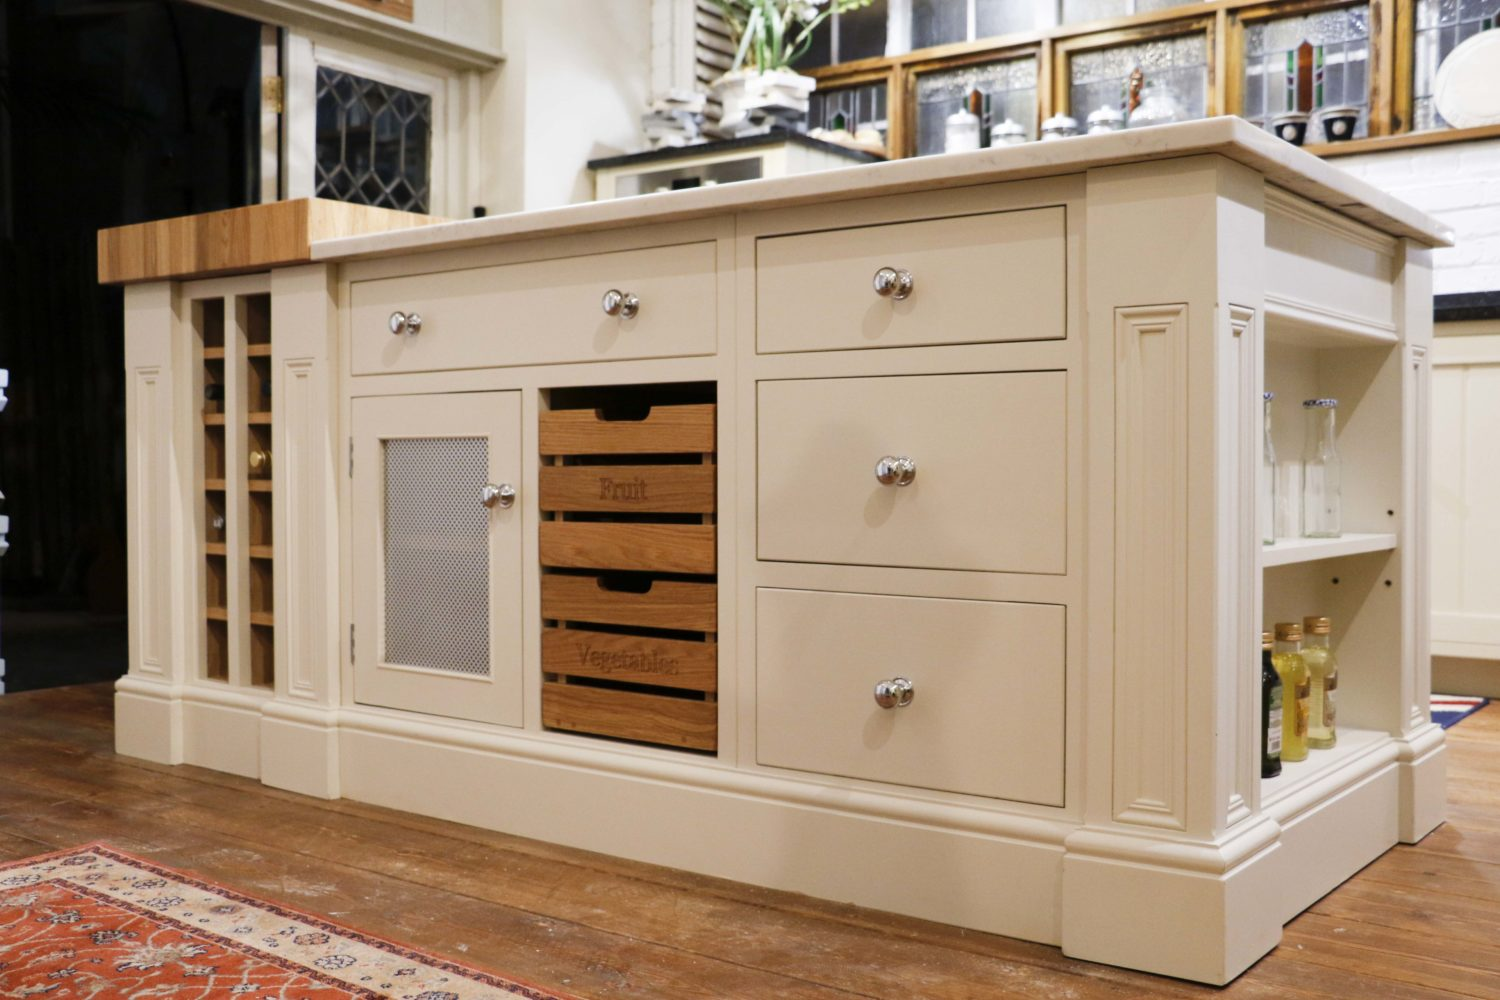 Large Kitchen Island With Seating Area Factory Offers By Mudd Co